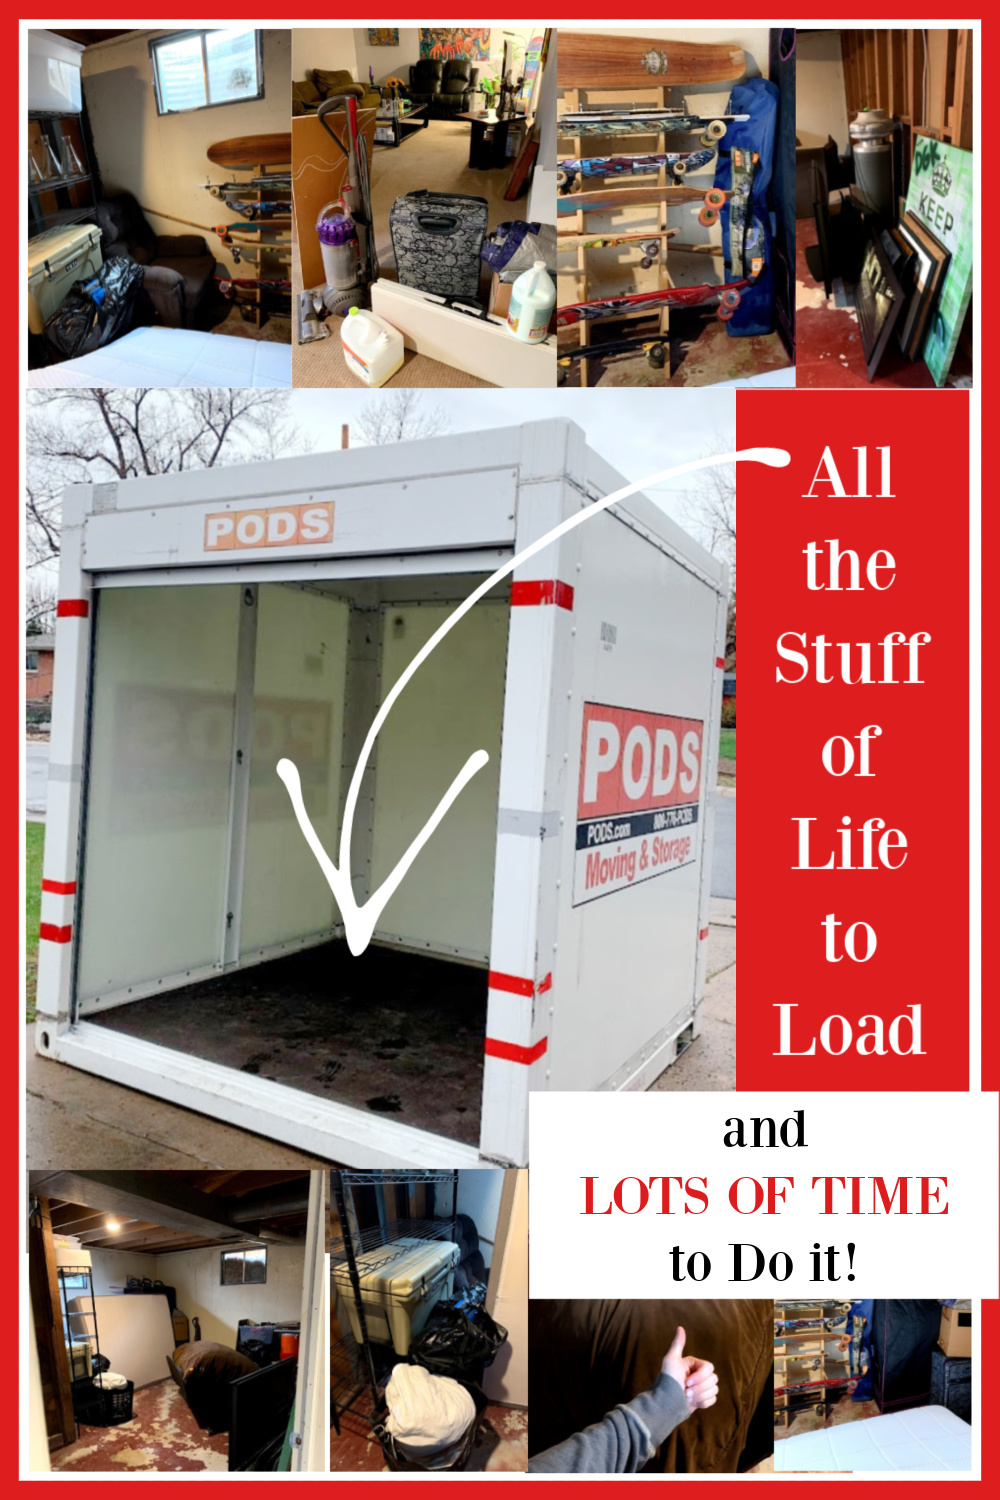 PODS container banner with images of belongings to load - all the stuff of life! Hello Lovely Studio. #podsmove #movingwithpods #relocation